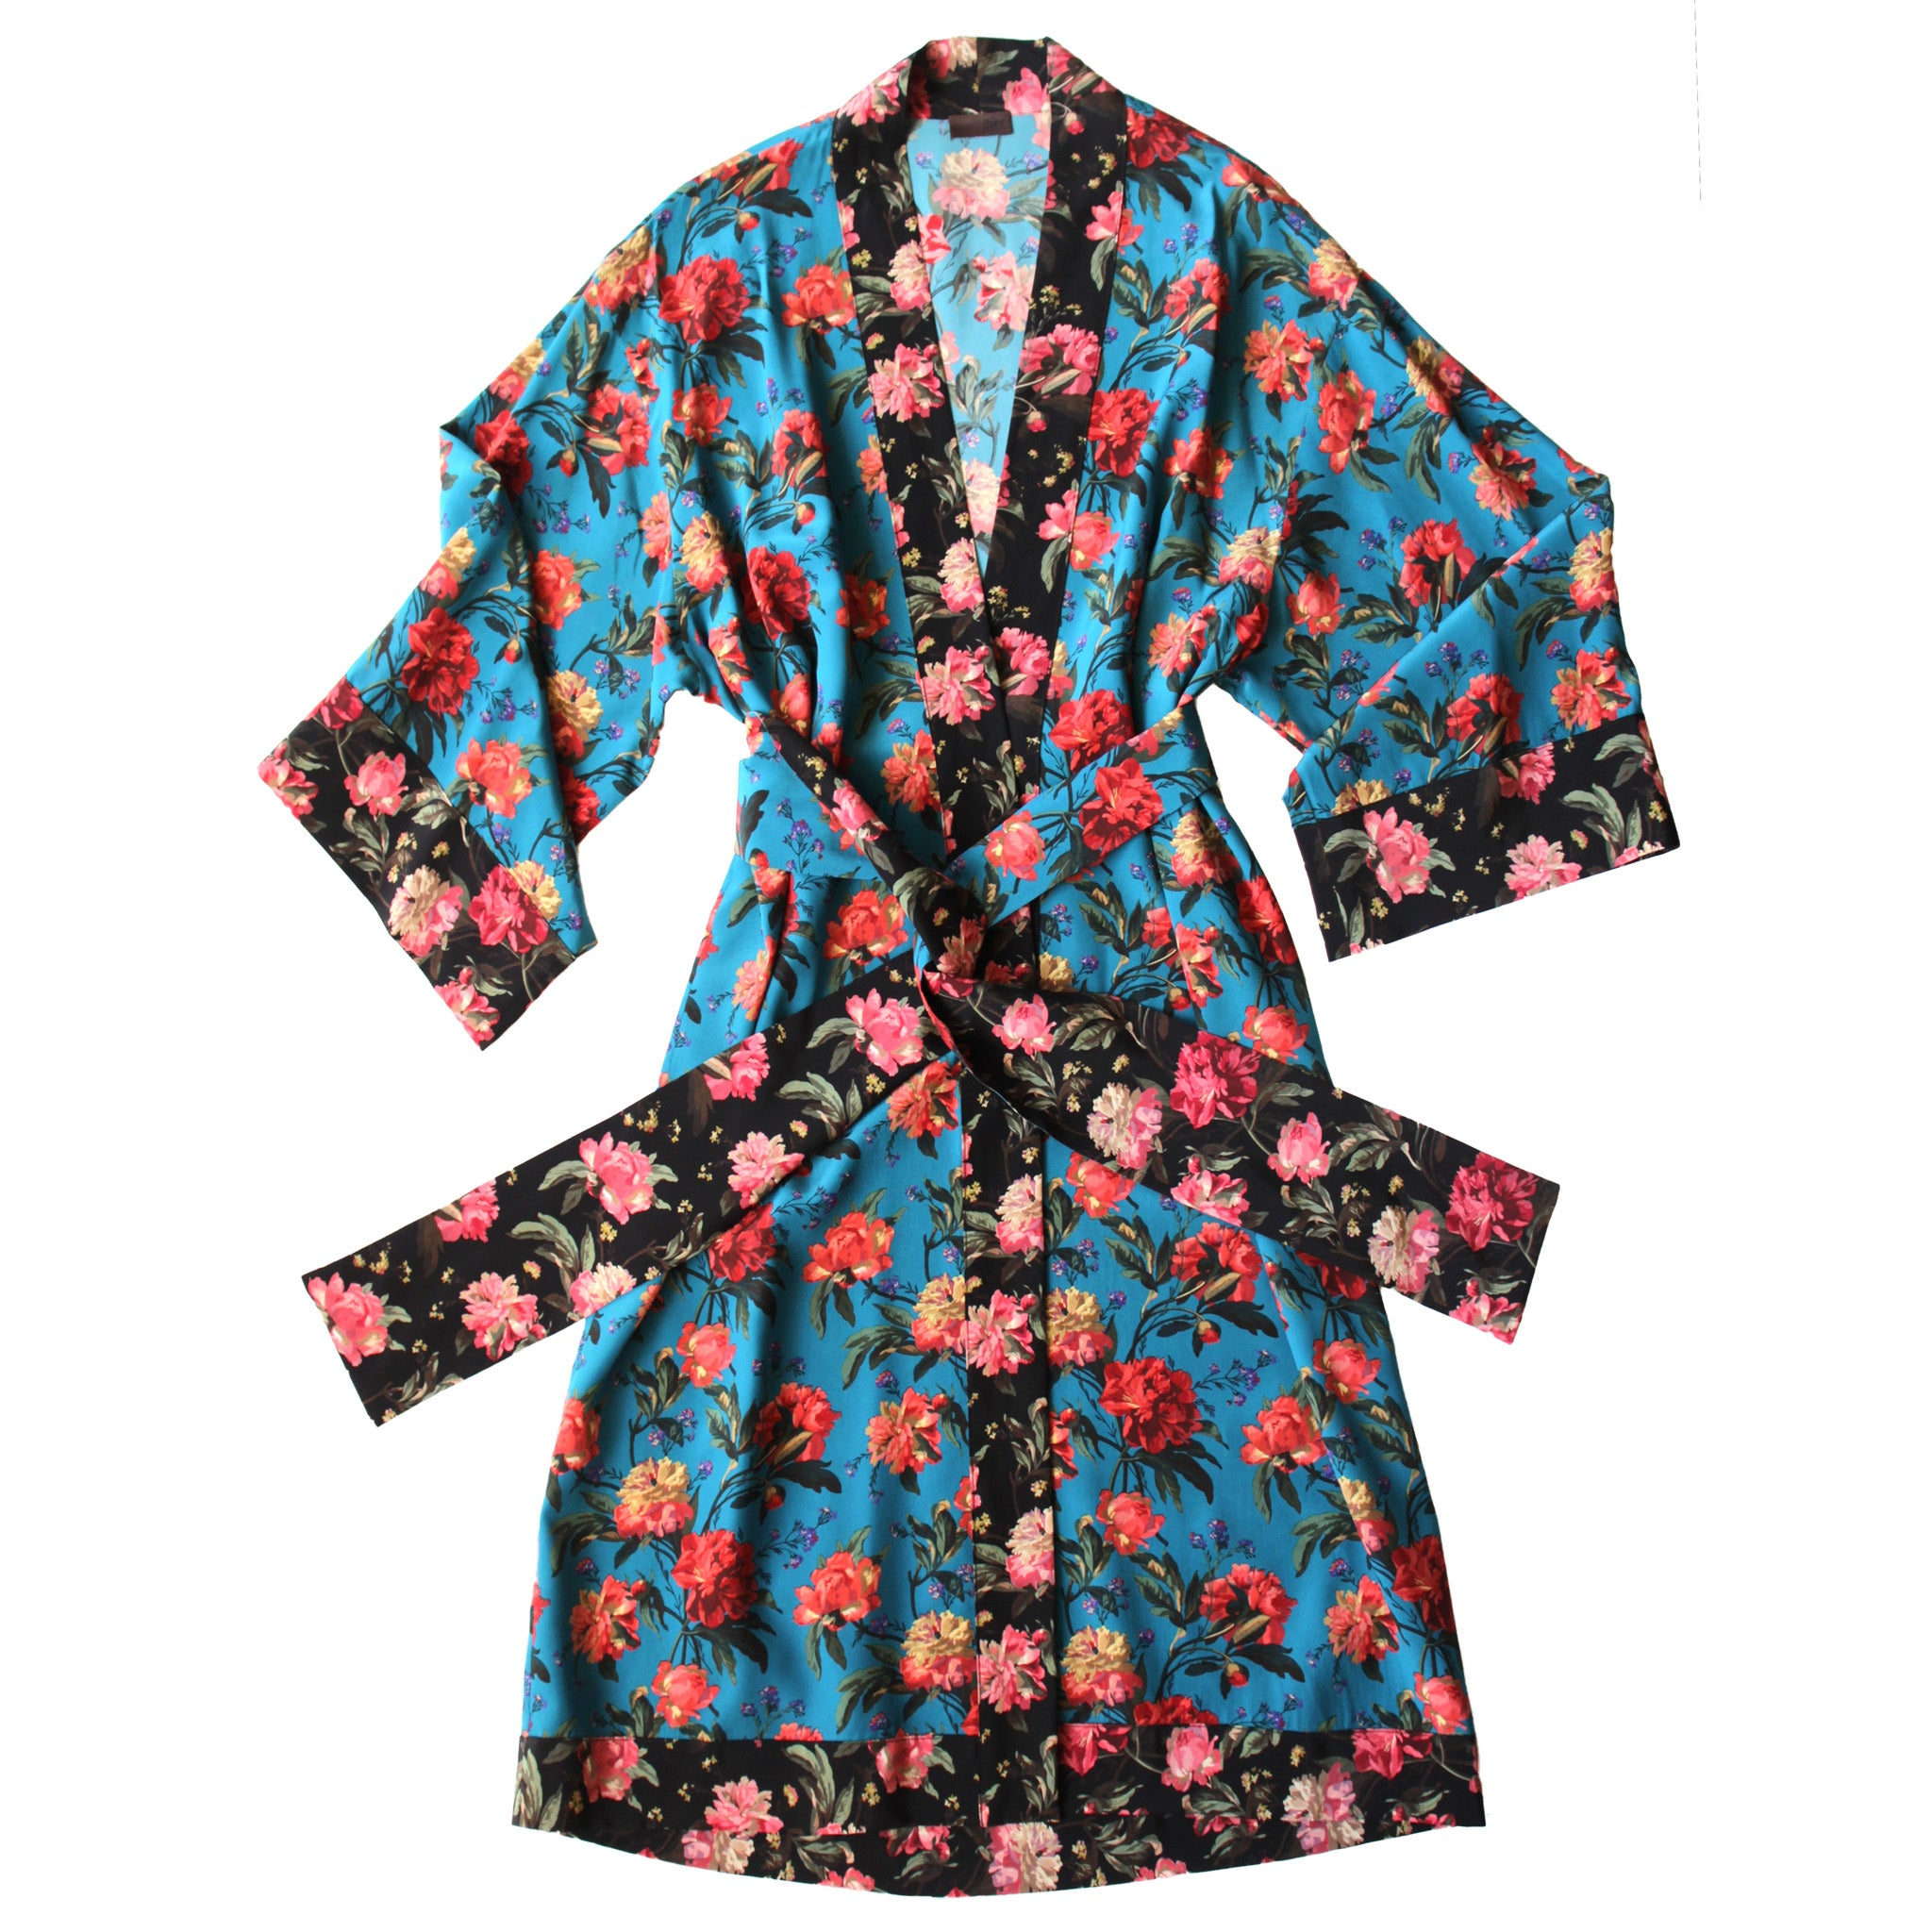 Selene Dressing Gown in Print Block Turquoise Decadent Blooms Liberty Silk Crepe De Chine